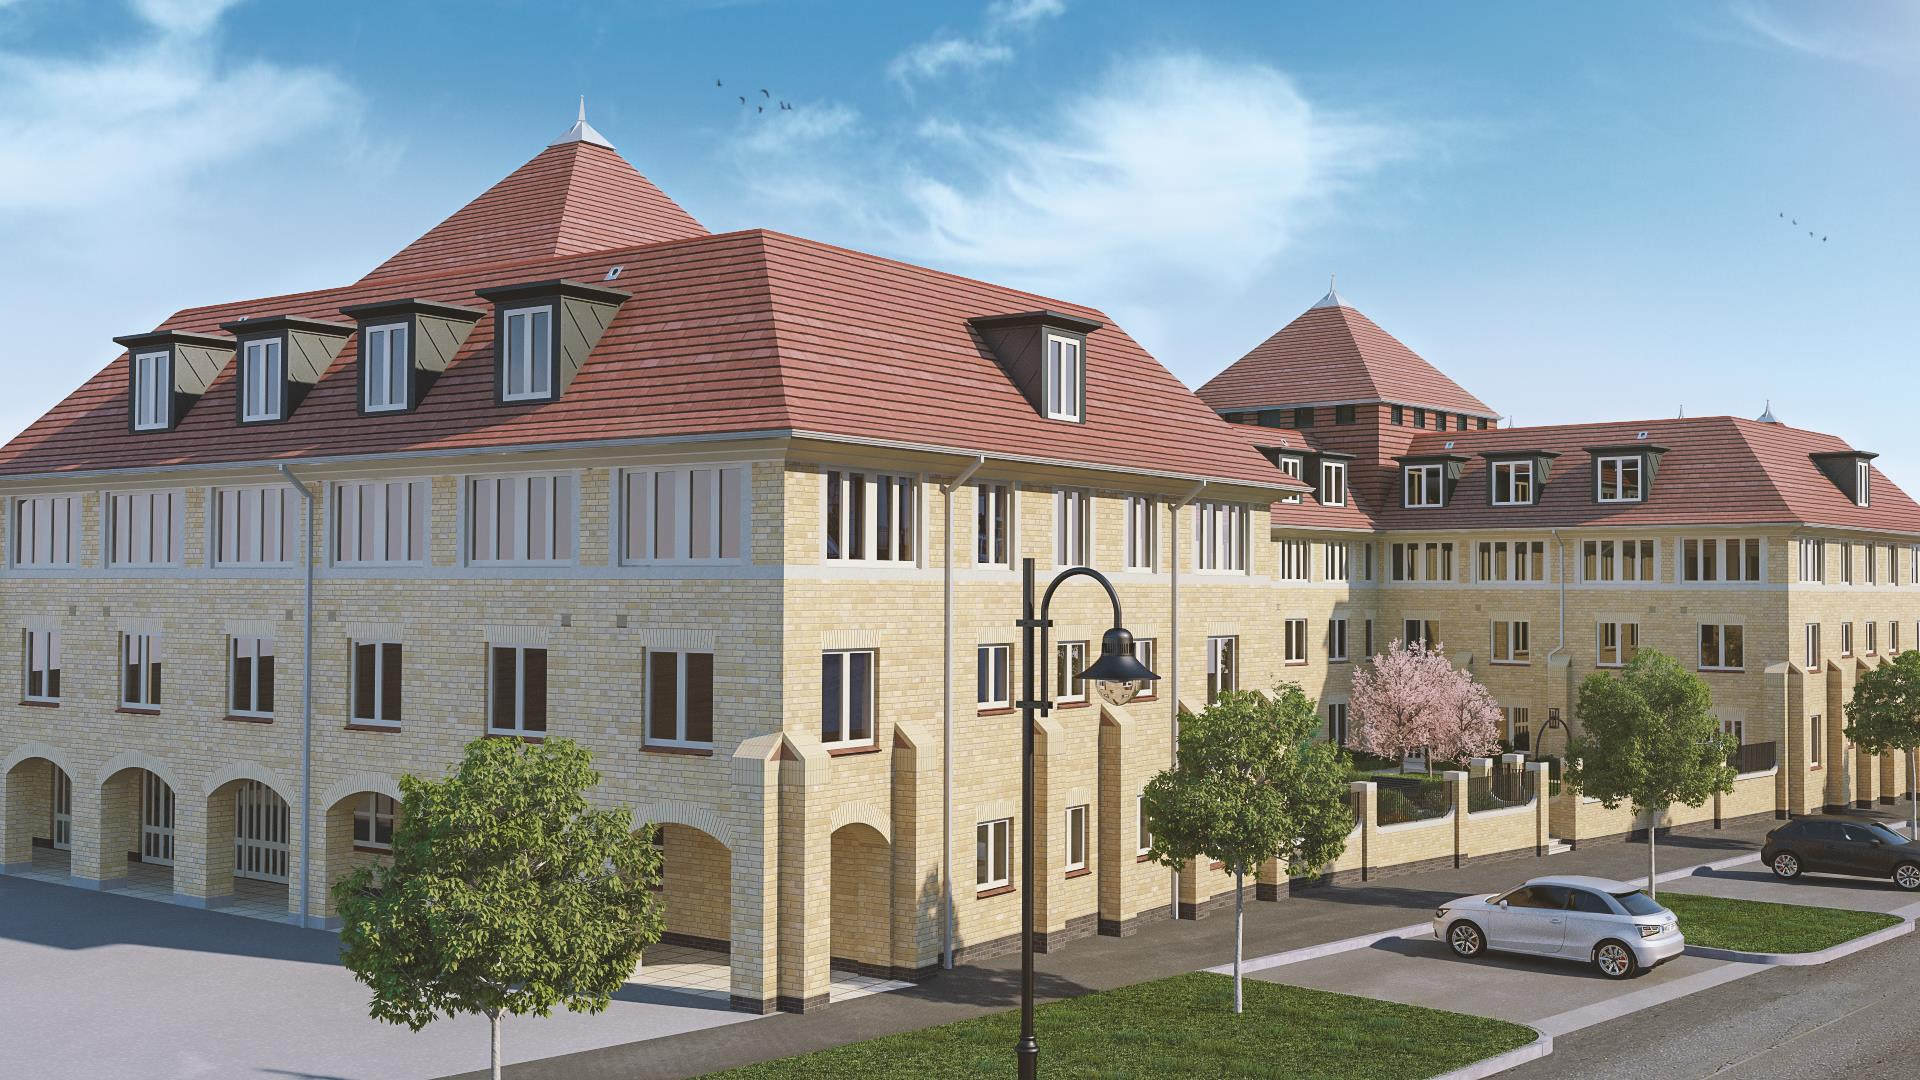 2 Bedrooms Property for sale in Peverell Avenue East, Poundbury